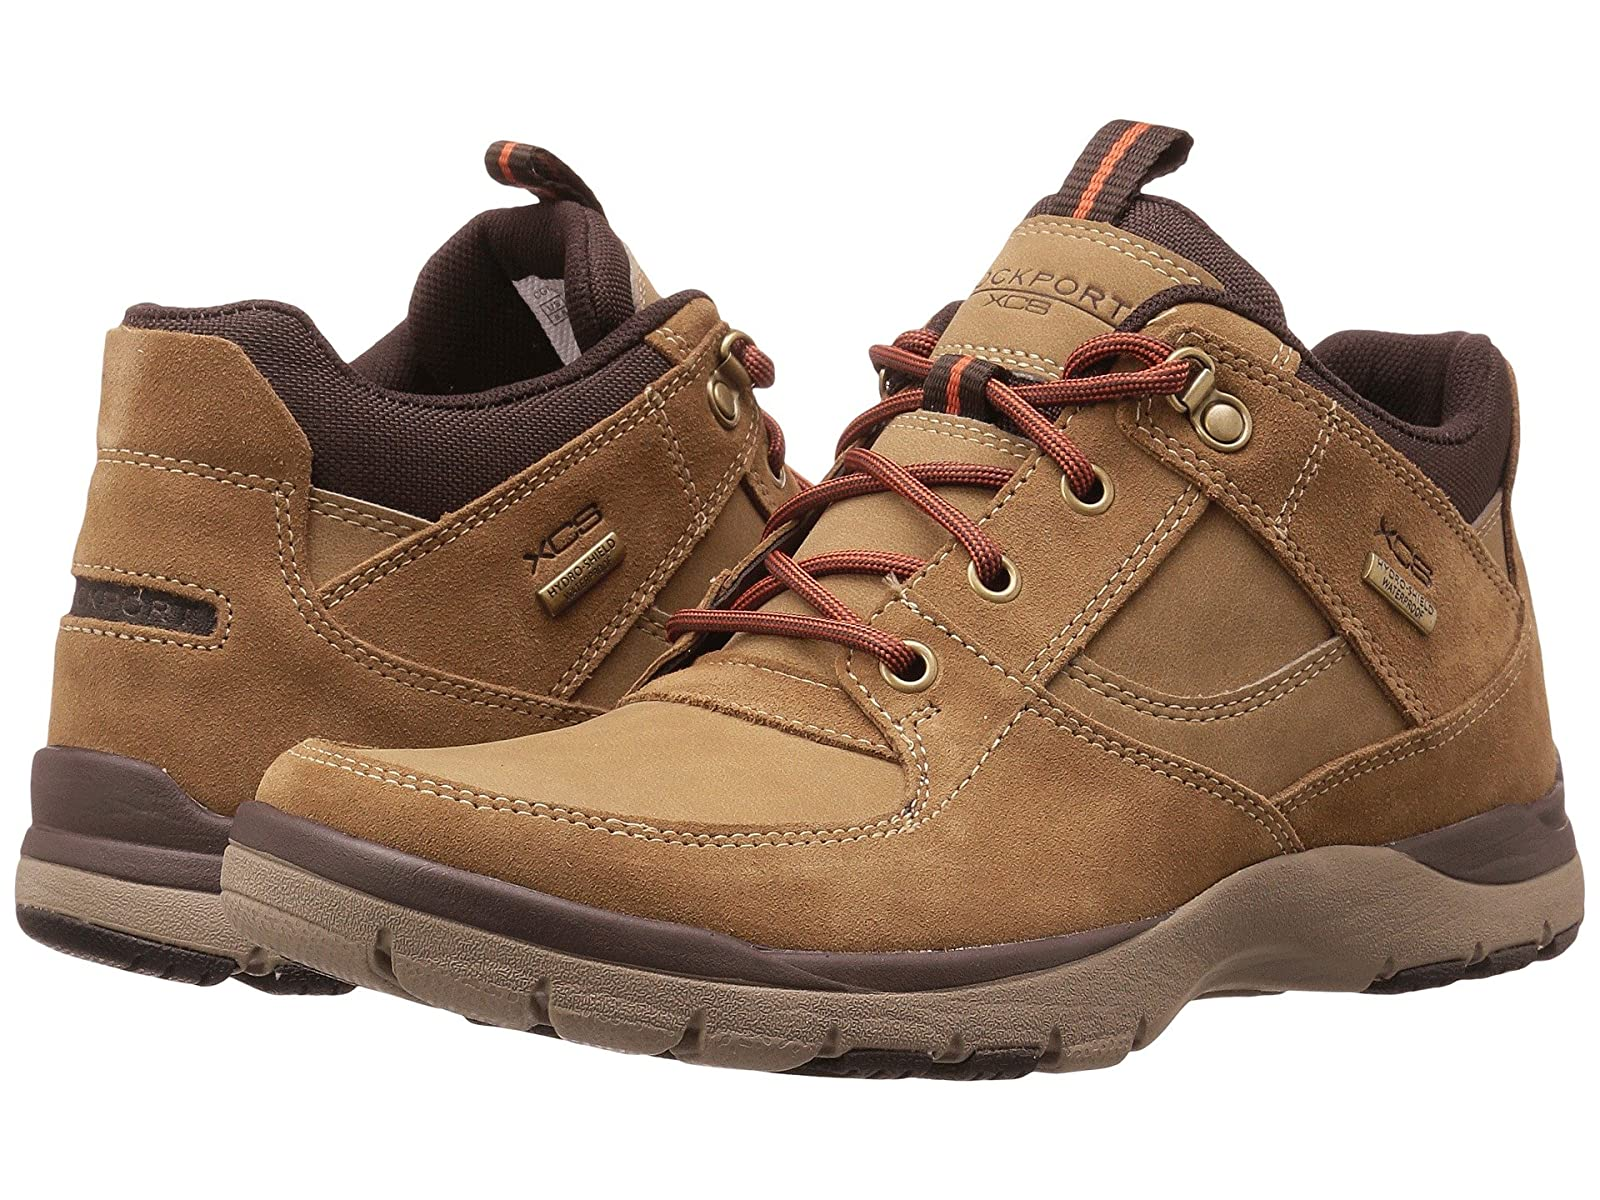 Rockport Kingstin Waterproof MidCheap and distinctive eye-catching shoes